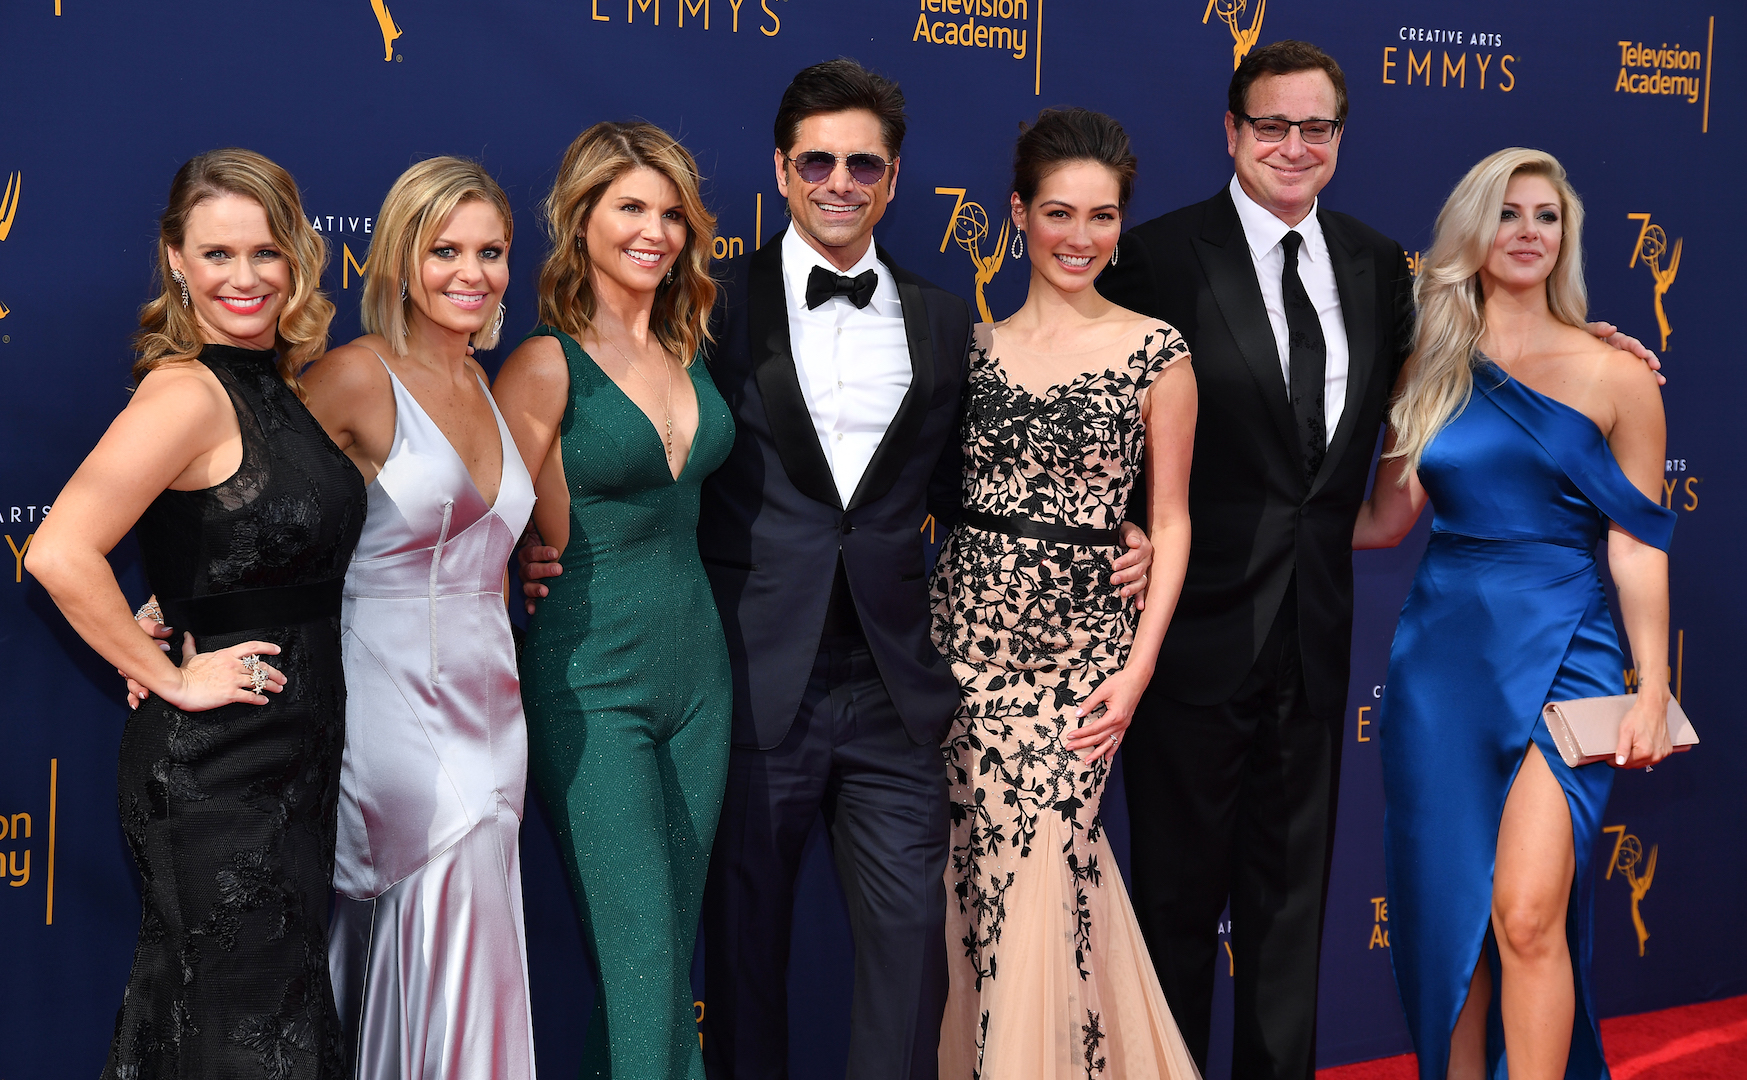 Fuller House Cast 4chion Lifestyle Emmys